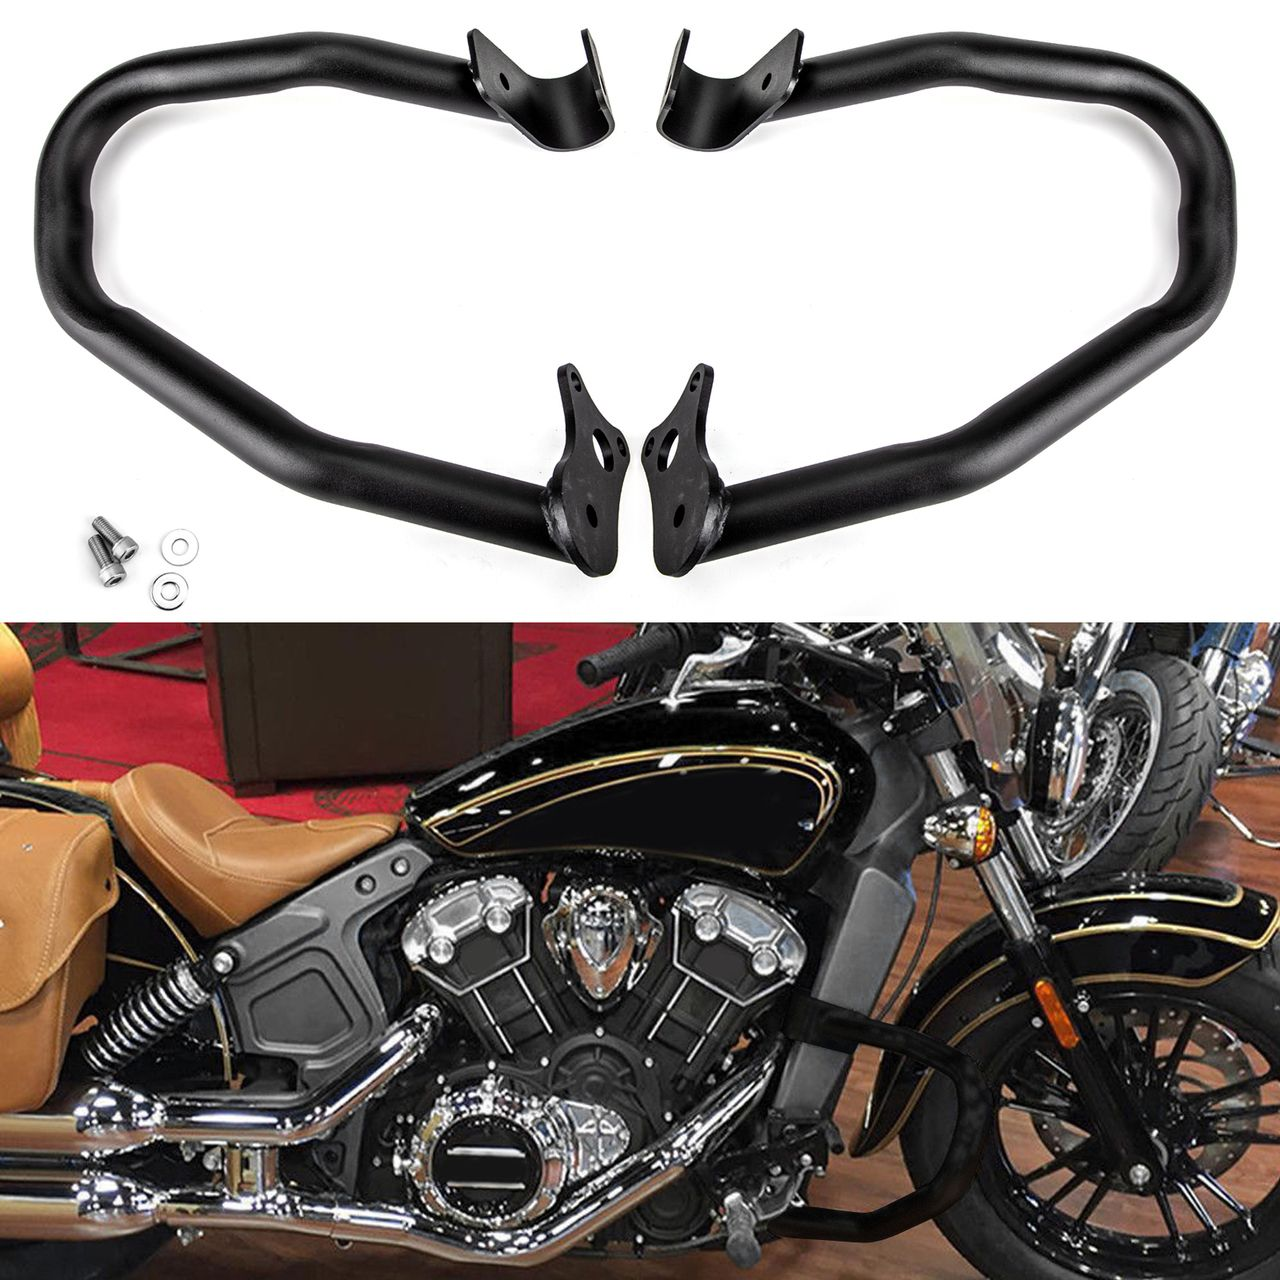 Solid Engine Guard Highway Crash Bars For Indian Scout 2015 2018 Black Indian Scout Indian Motorcycle Classic Harley Davidson [ 1280 x 1280 Pixel ]